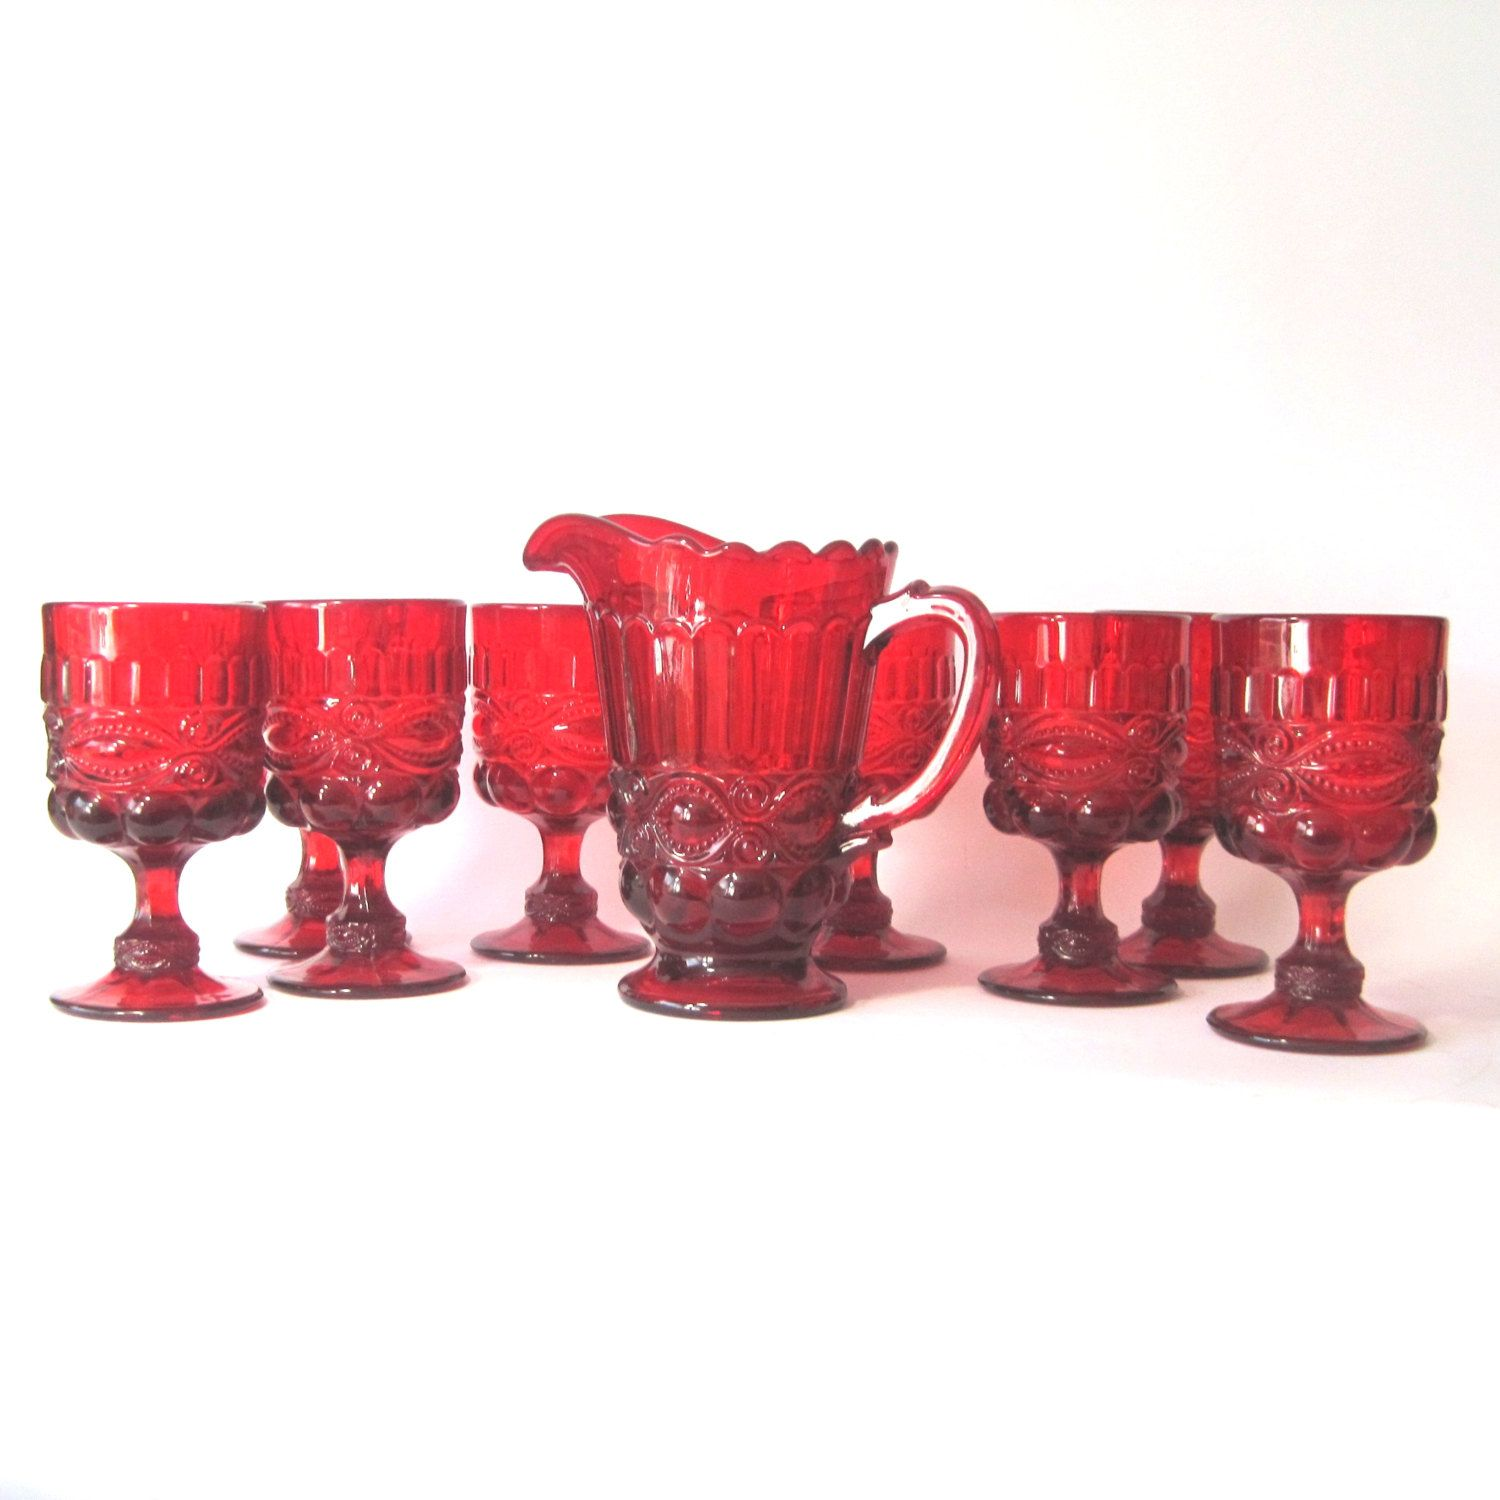 Vintage Ruby Red Eyewinker Pitcher And 8 Goblets By Lg Wright Vintage Goblets Antique Glass Red Glass